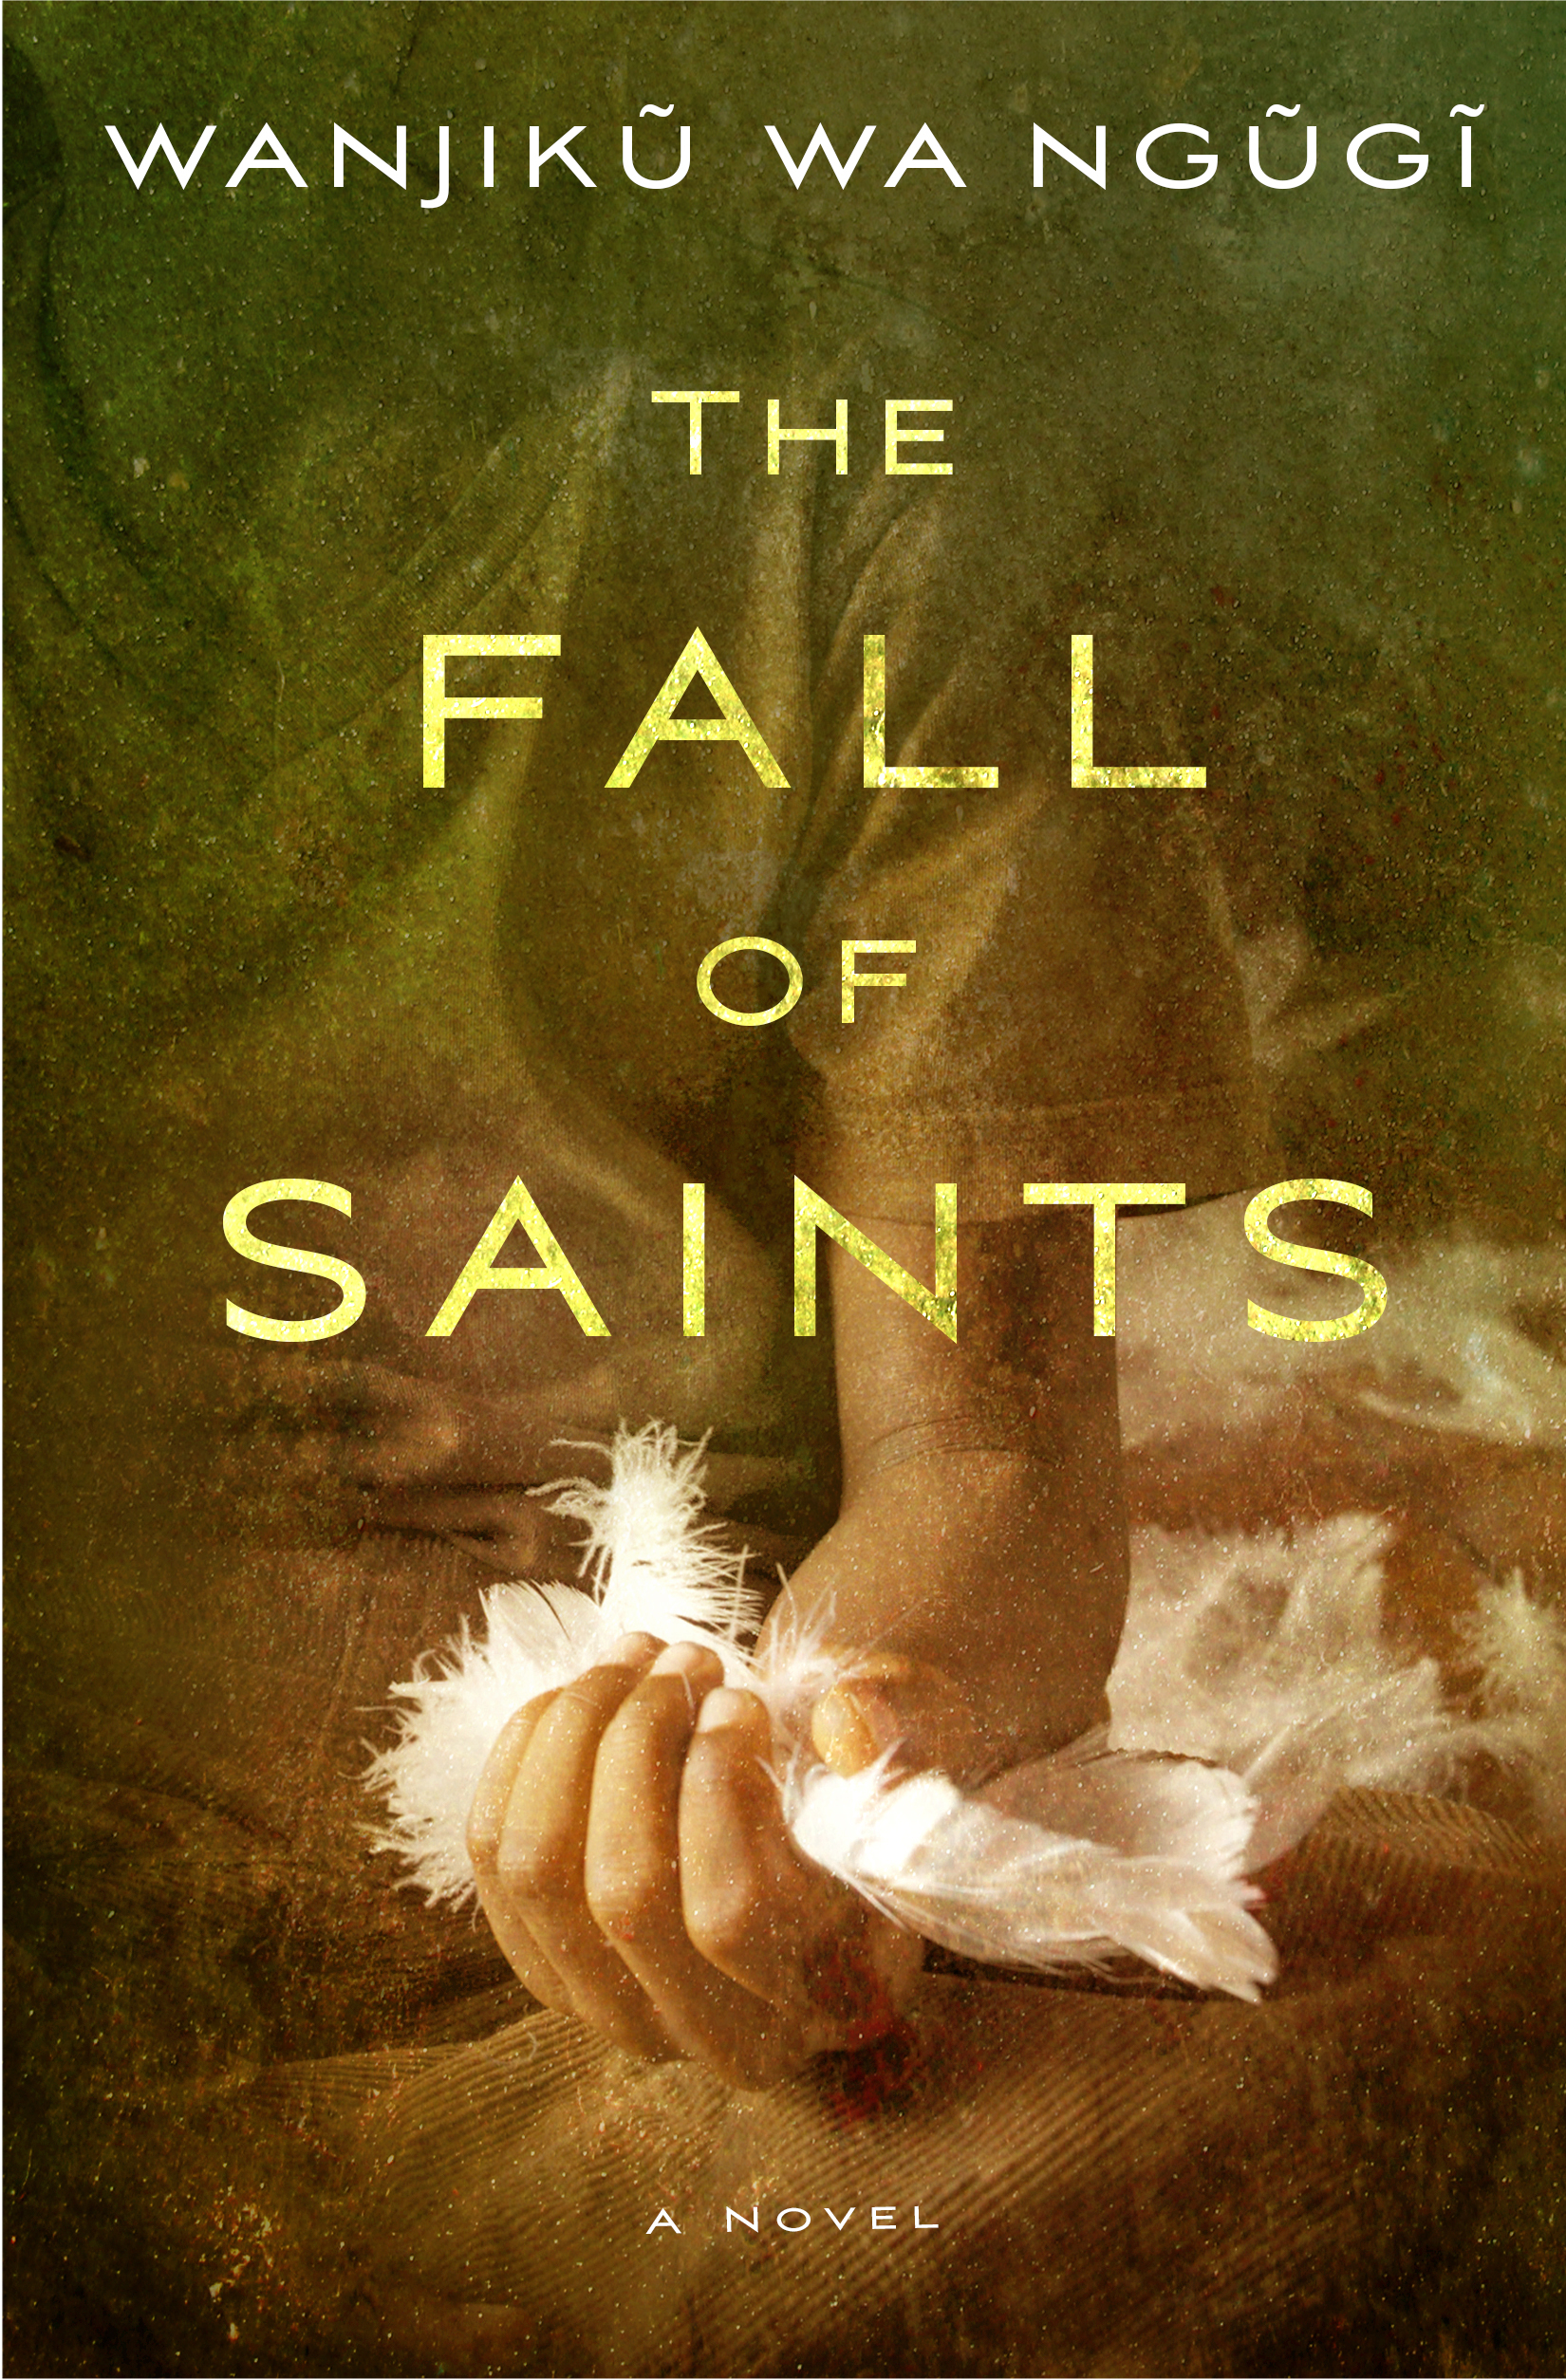 Fall-of-saints-9781476714912_hr